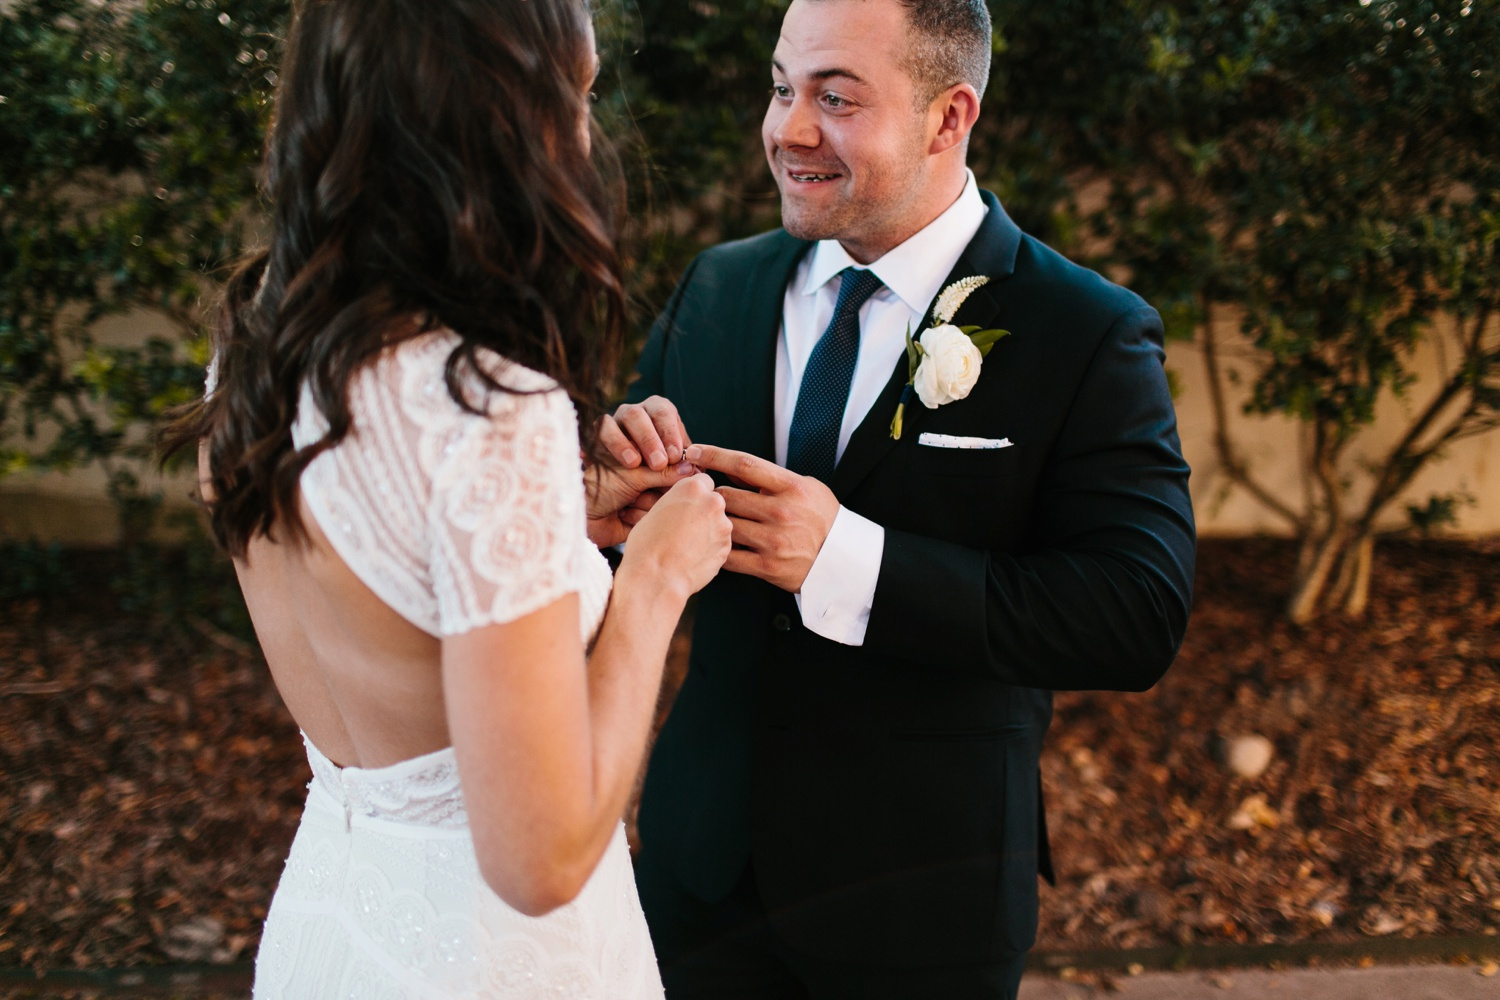 Kadee + Tyler | a raw, emotional wedding at the Filter Building on White Rock Lake in Dallas, TX by North Texas Wedding Photographer, Rachel Meagan Photography 078